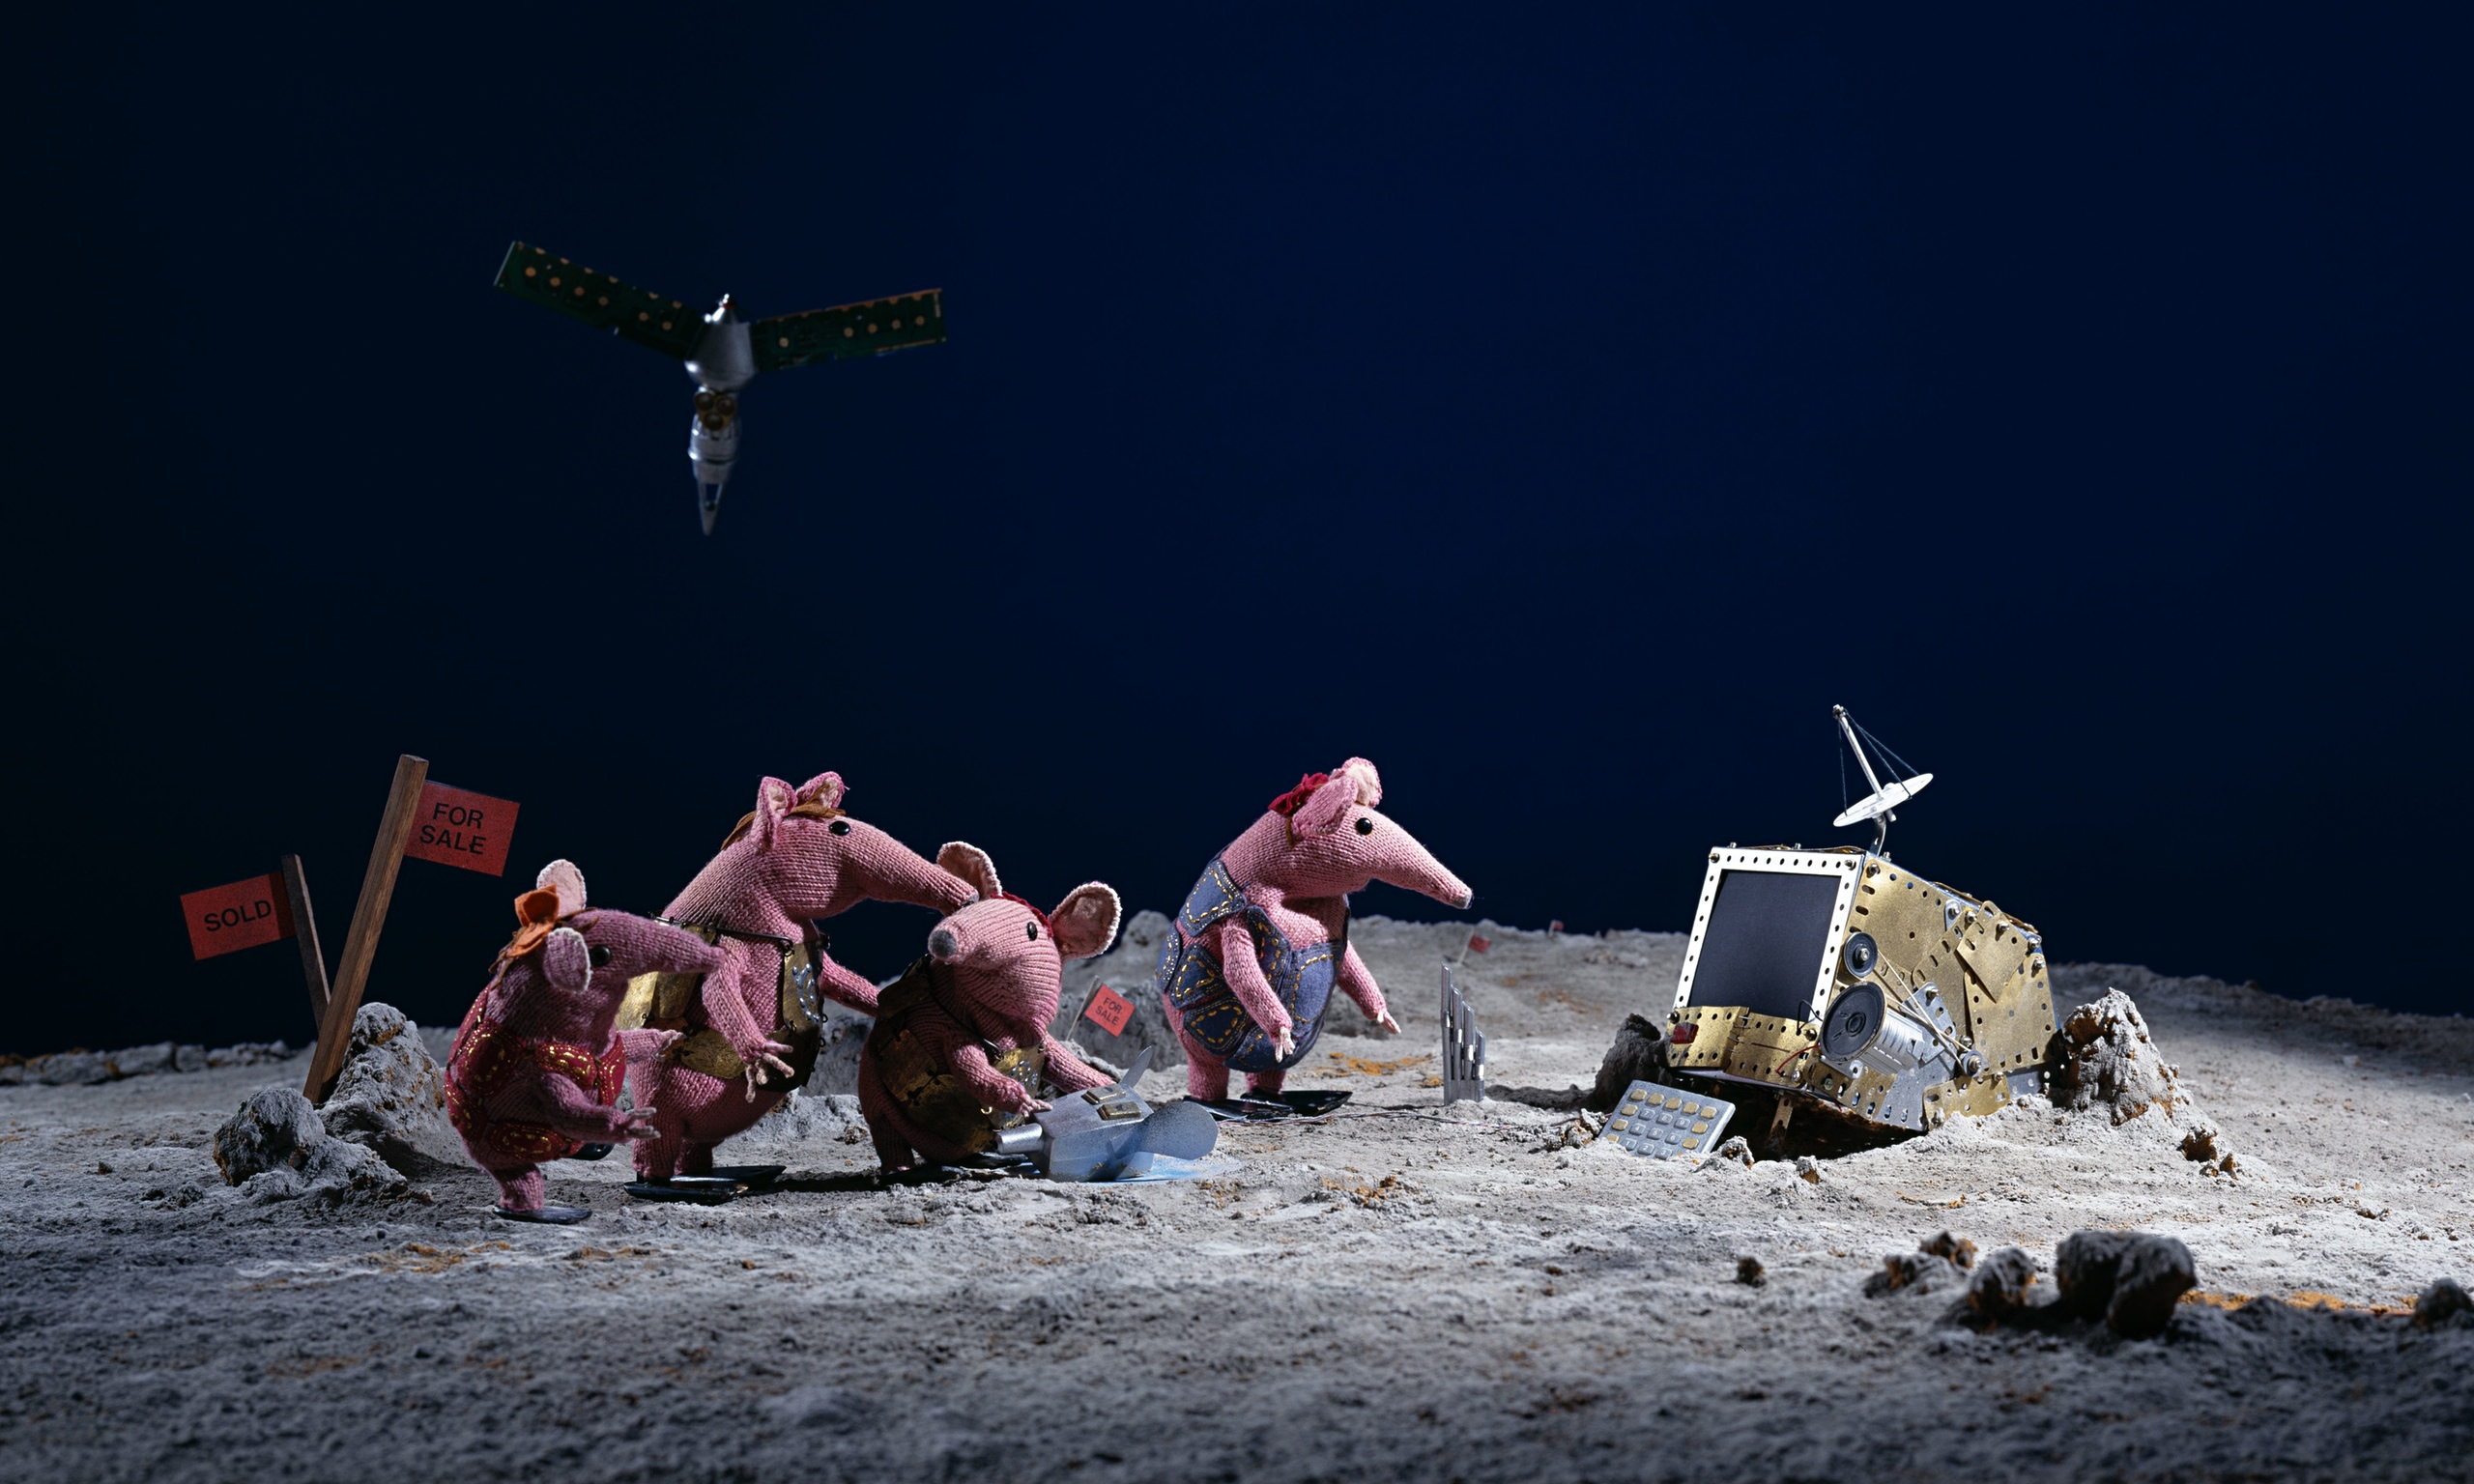 https://static.guim.co.uk/sys-images/Media/Pix/gallery/2014/9/8/1410169844912/Clangers-014.jpg